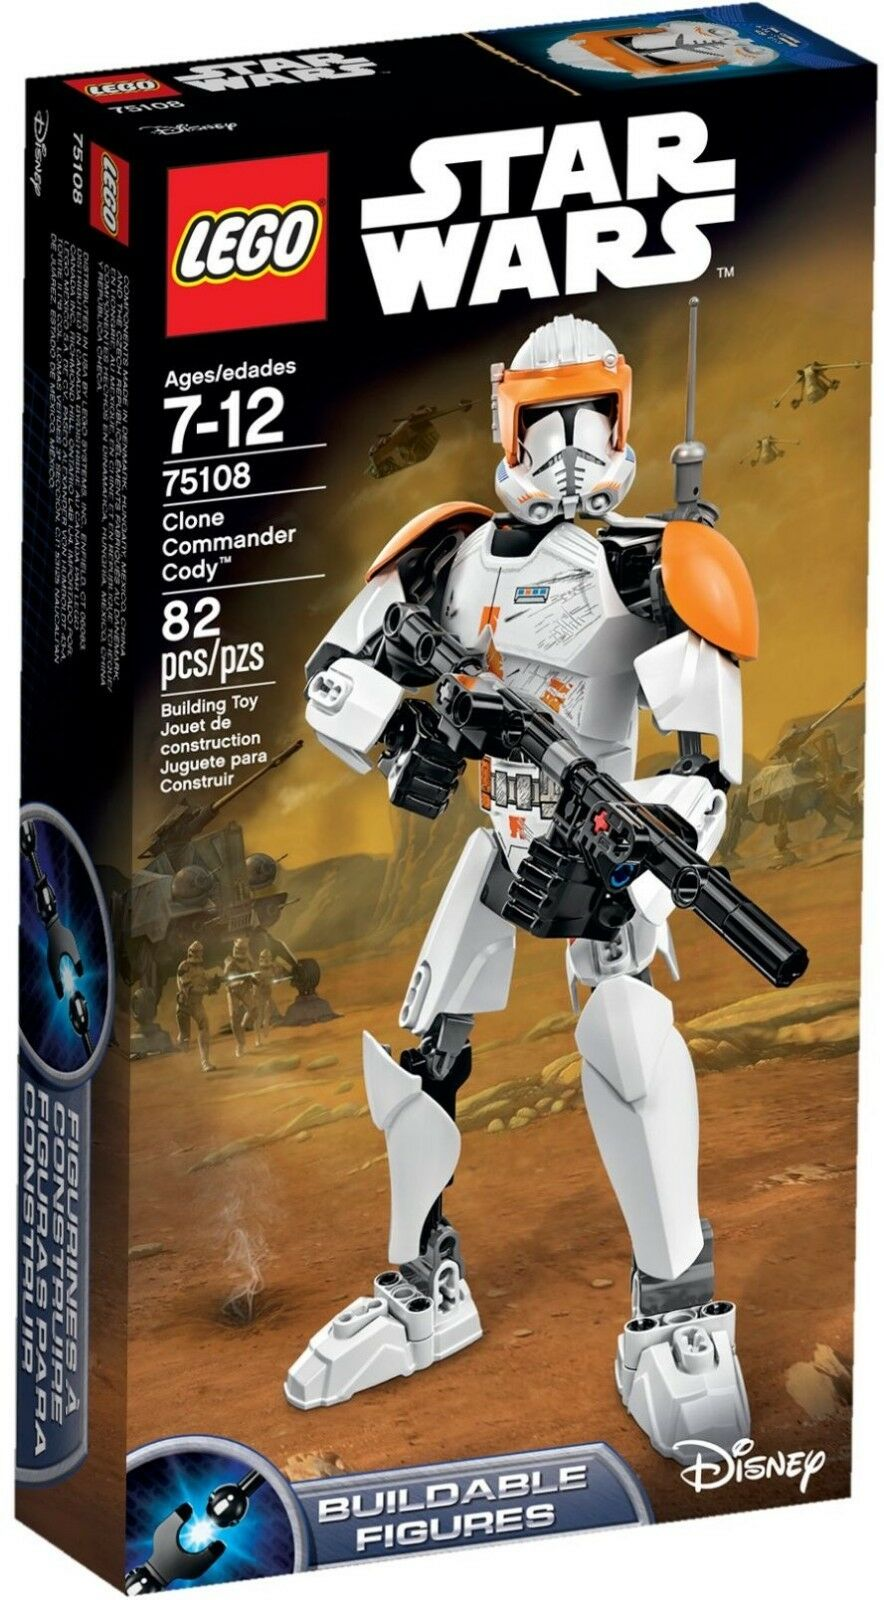 LEGO Star Wars 75108 - Clone Commander Cody - Buildable Figure - New in Box